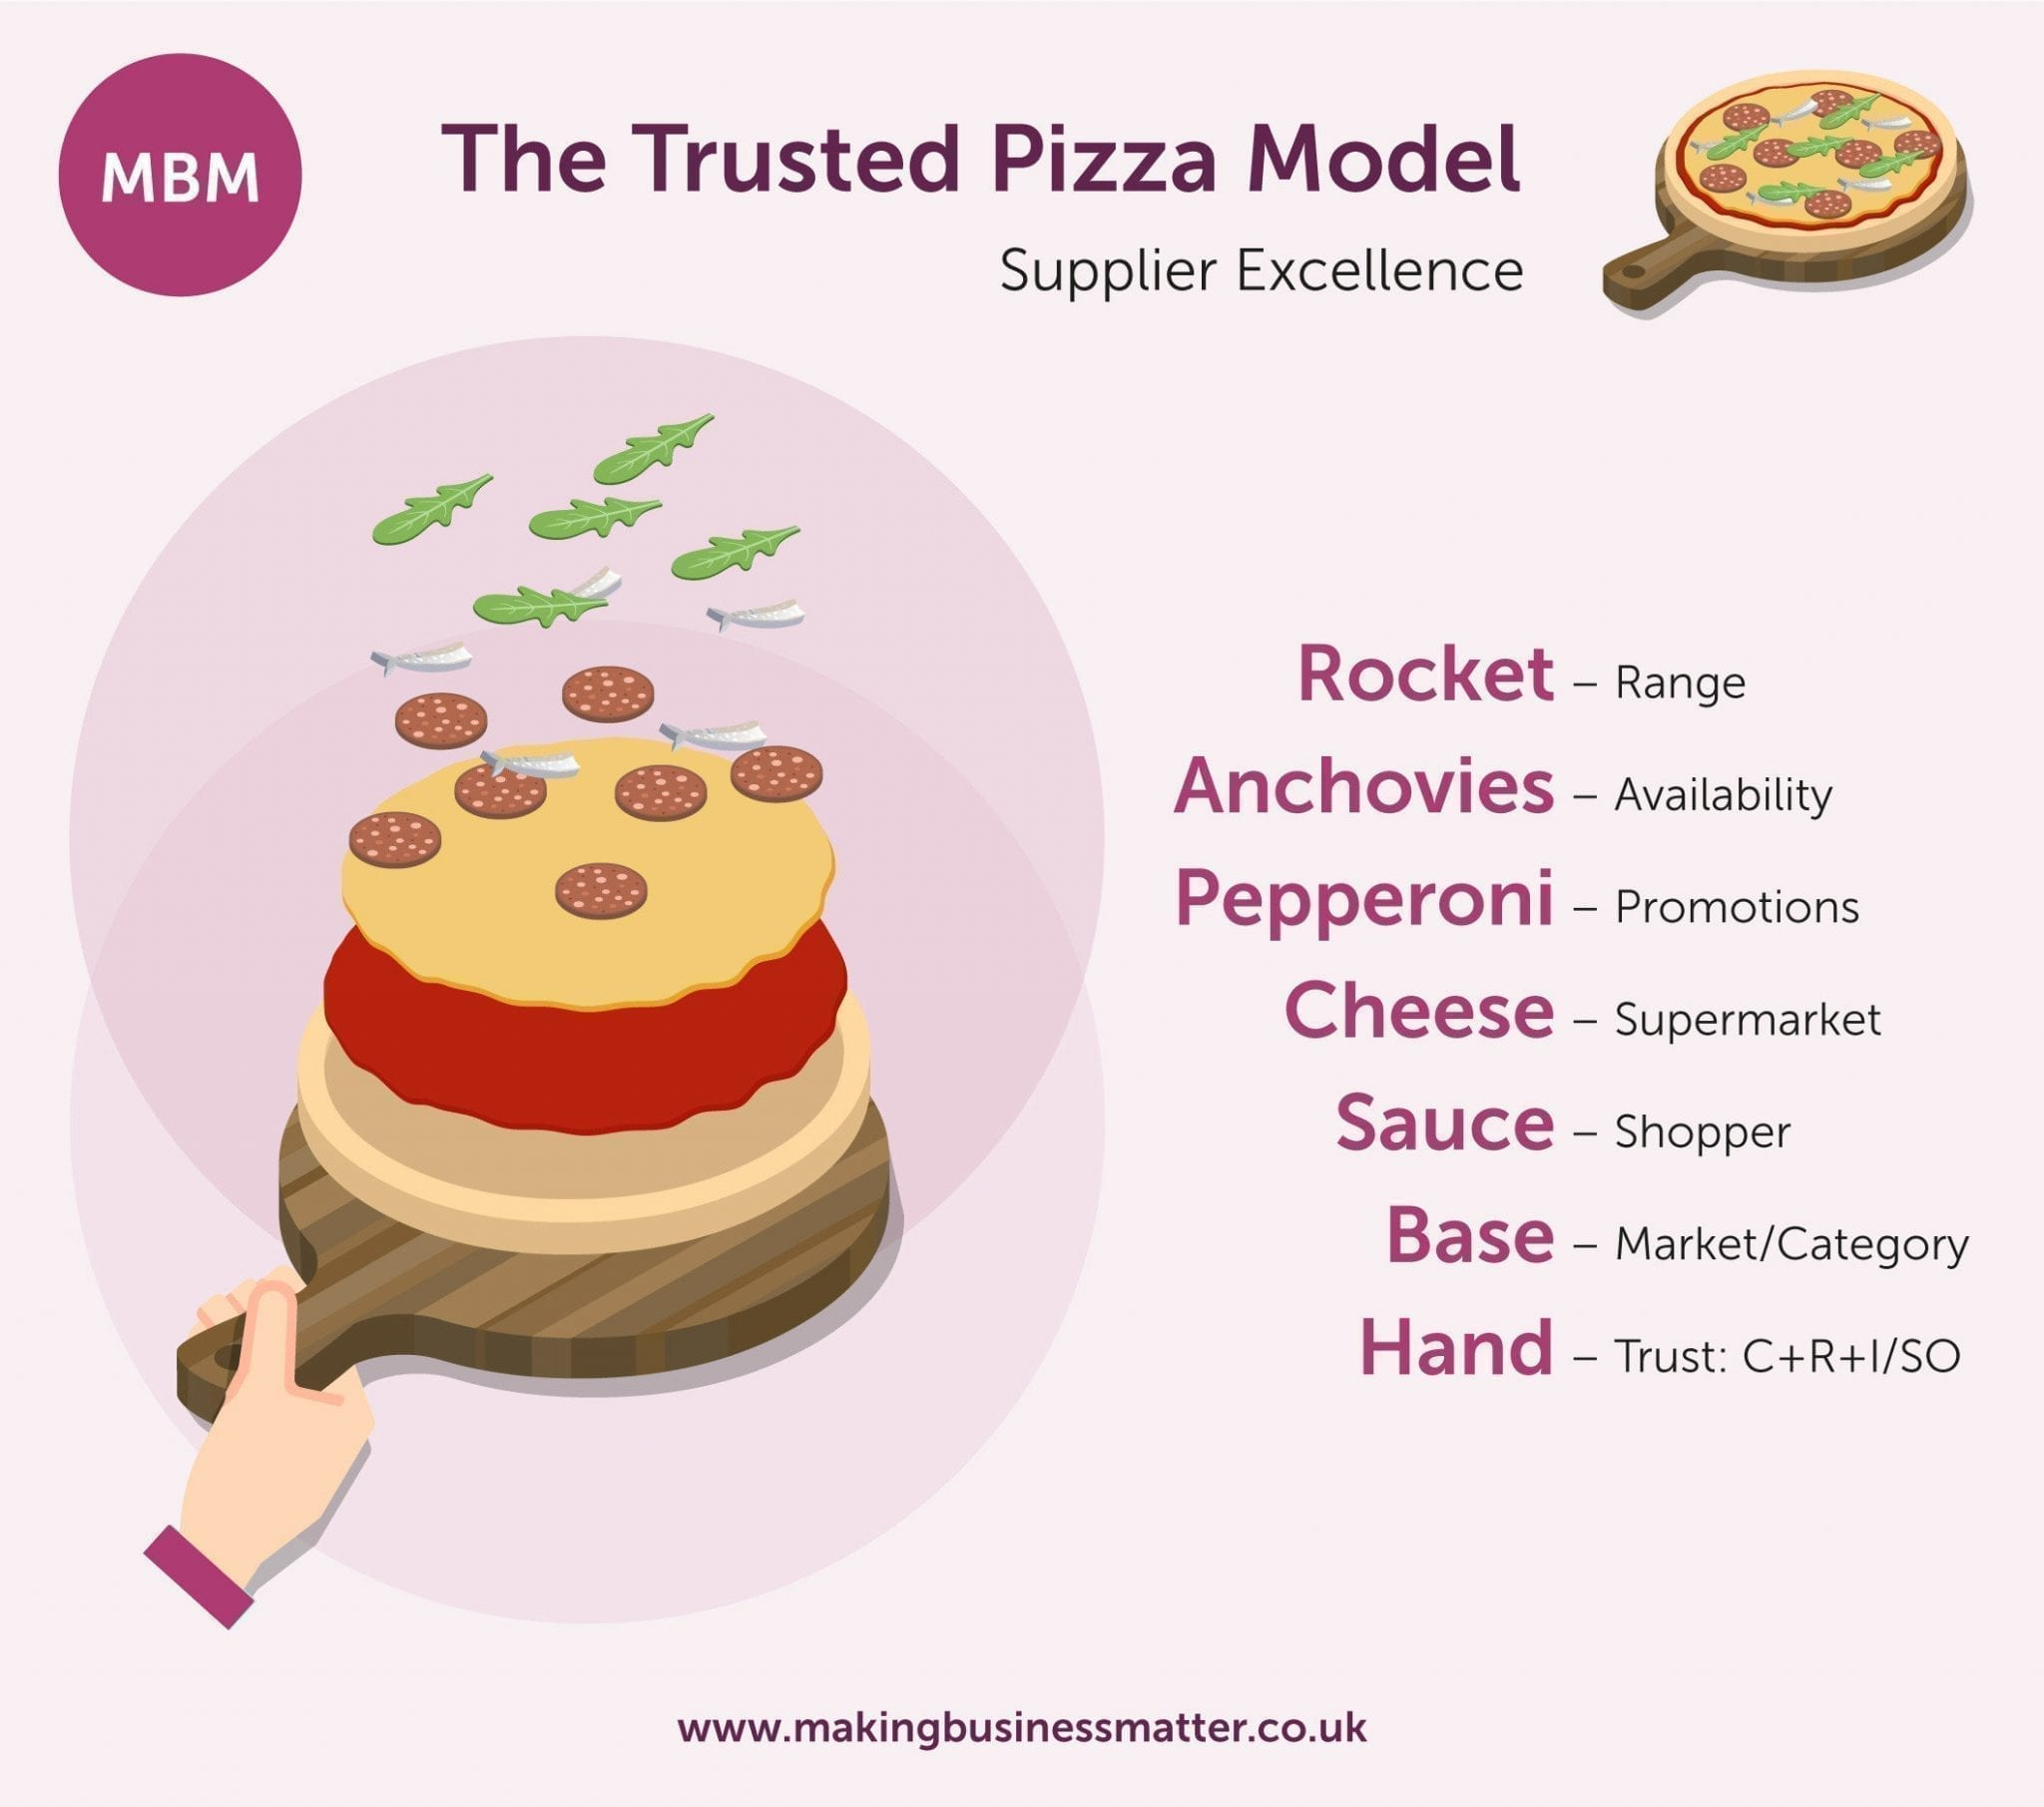 The Trusted Pizza Model showing ingredients